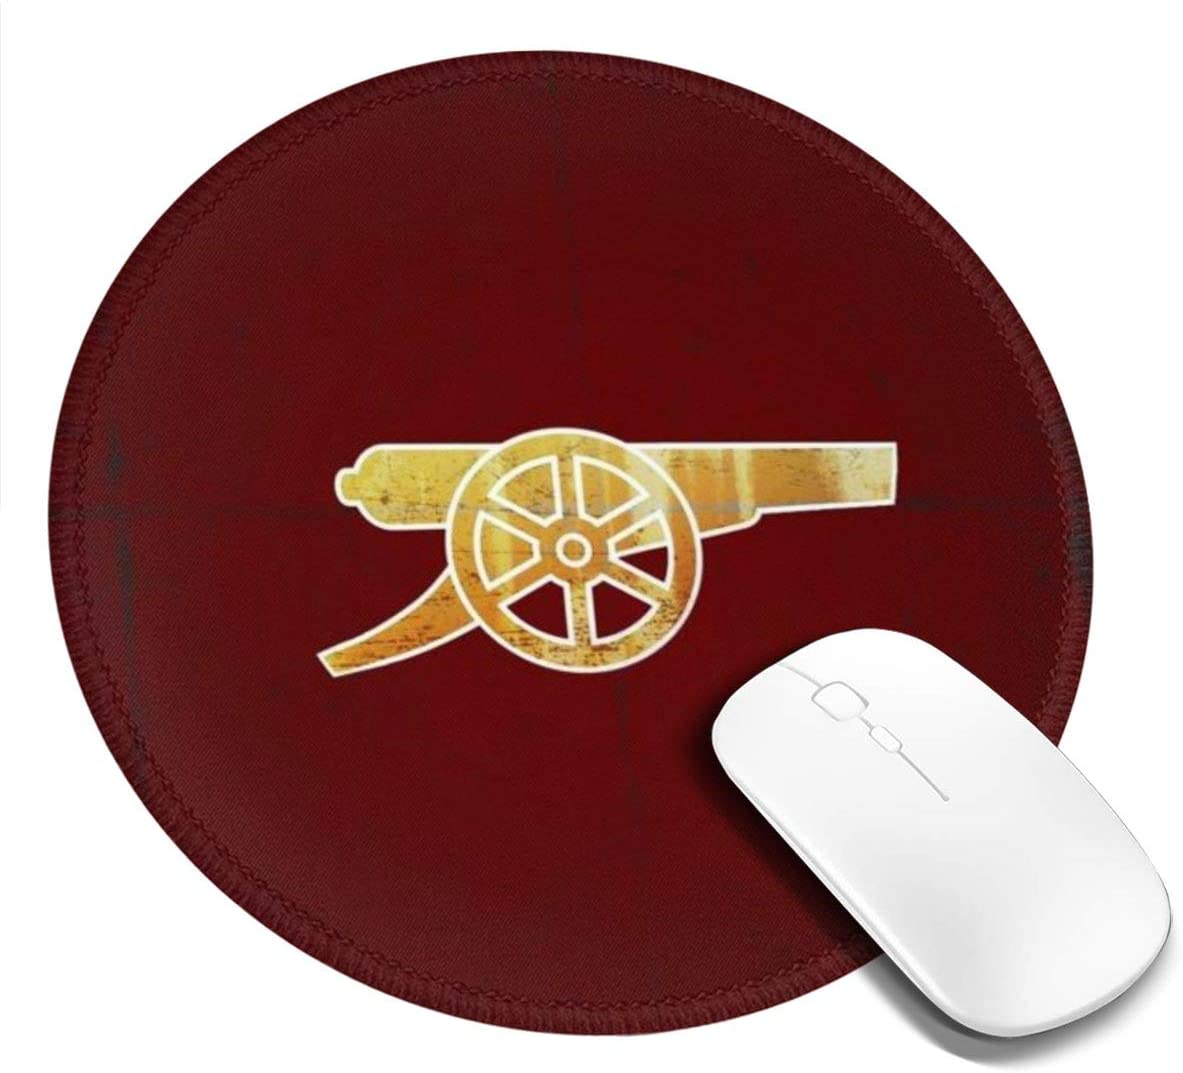 Round Mouse Pad Anti Slip Rubber Mousepads Desktop Notebook The Gunners Computer Mouse Mat for Office Home Working and Gaming 7.9 x 7.9 x 0.1 Inch